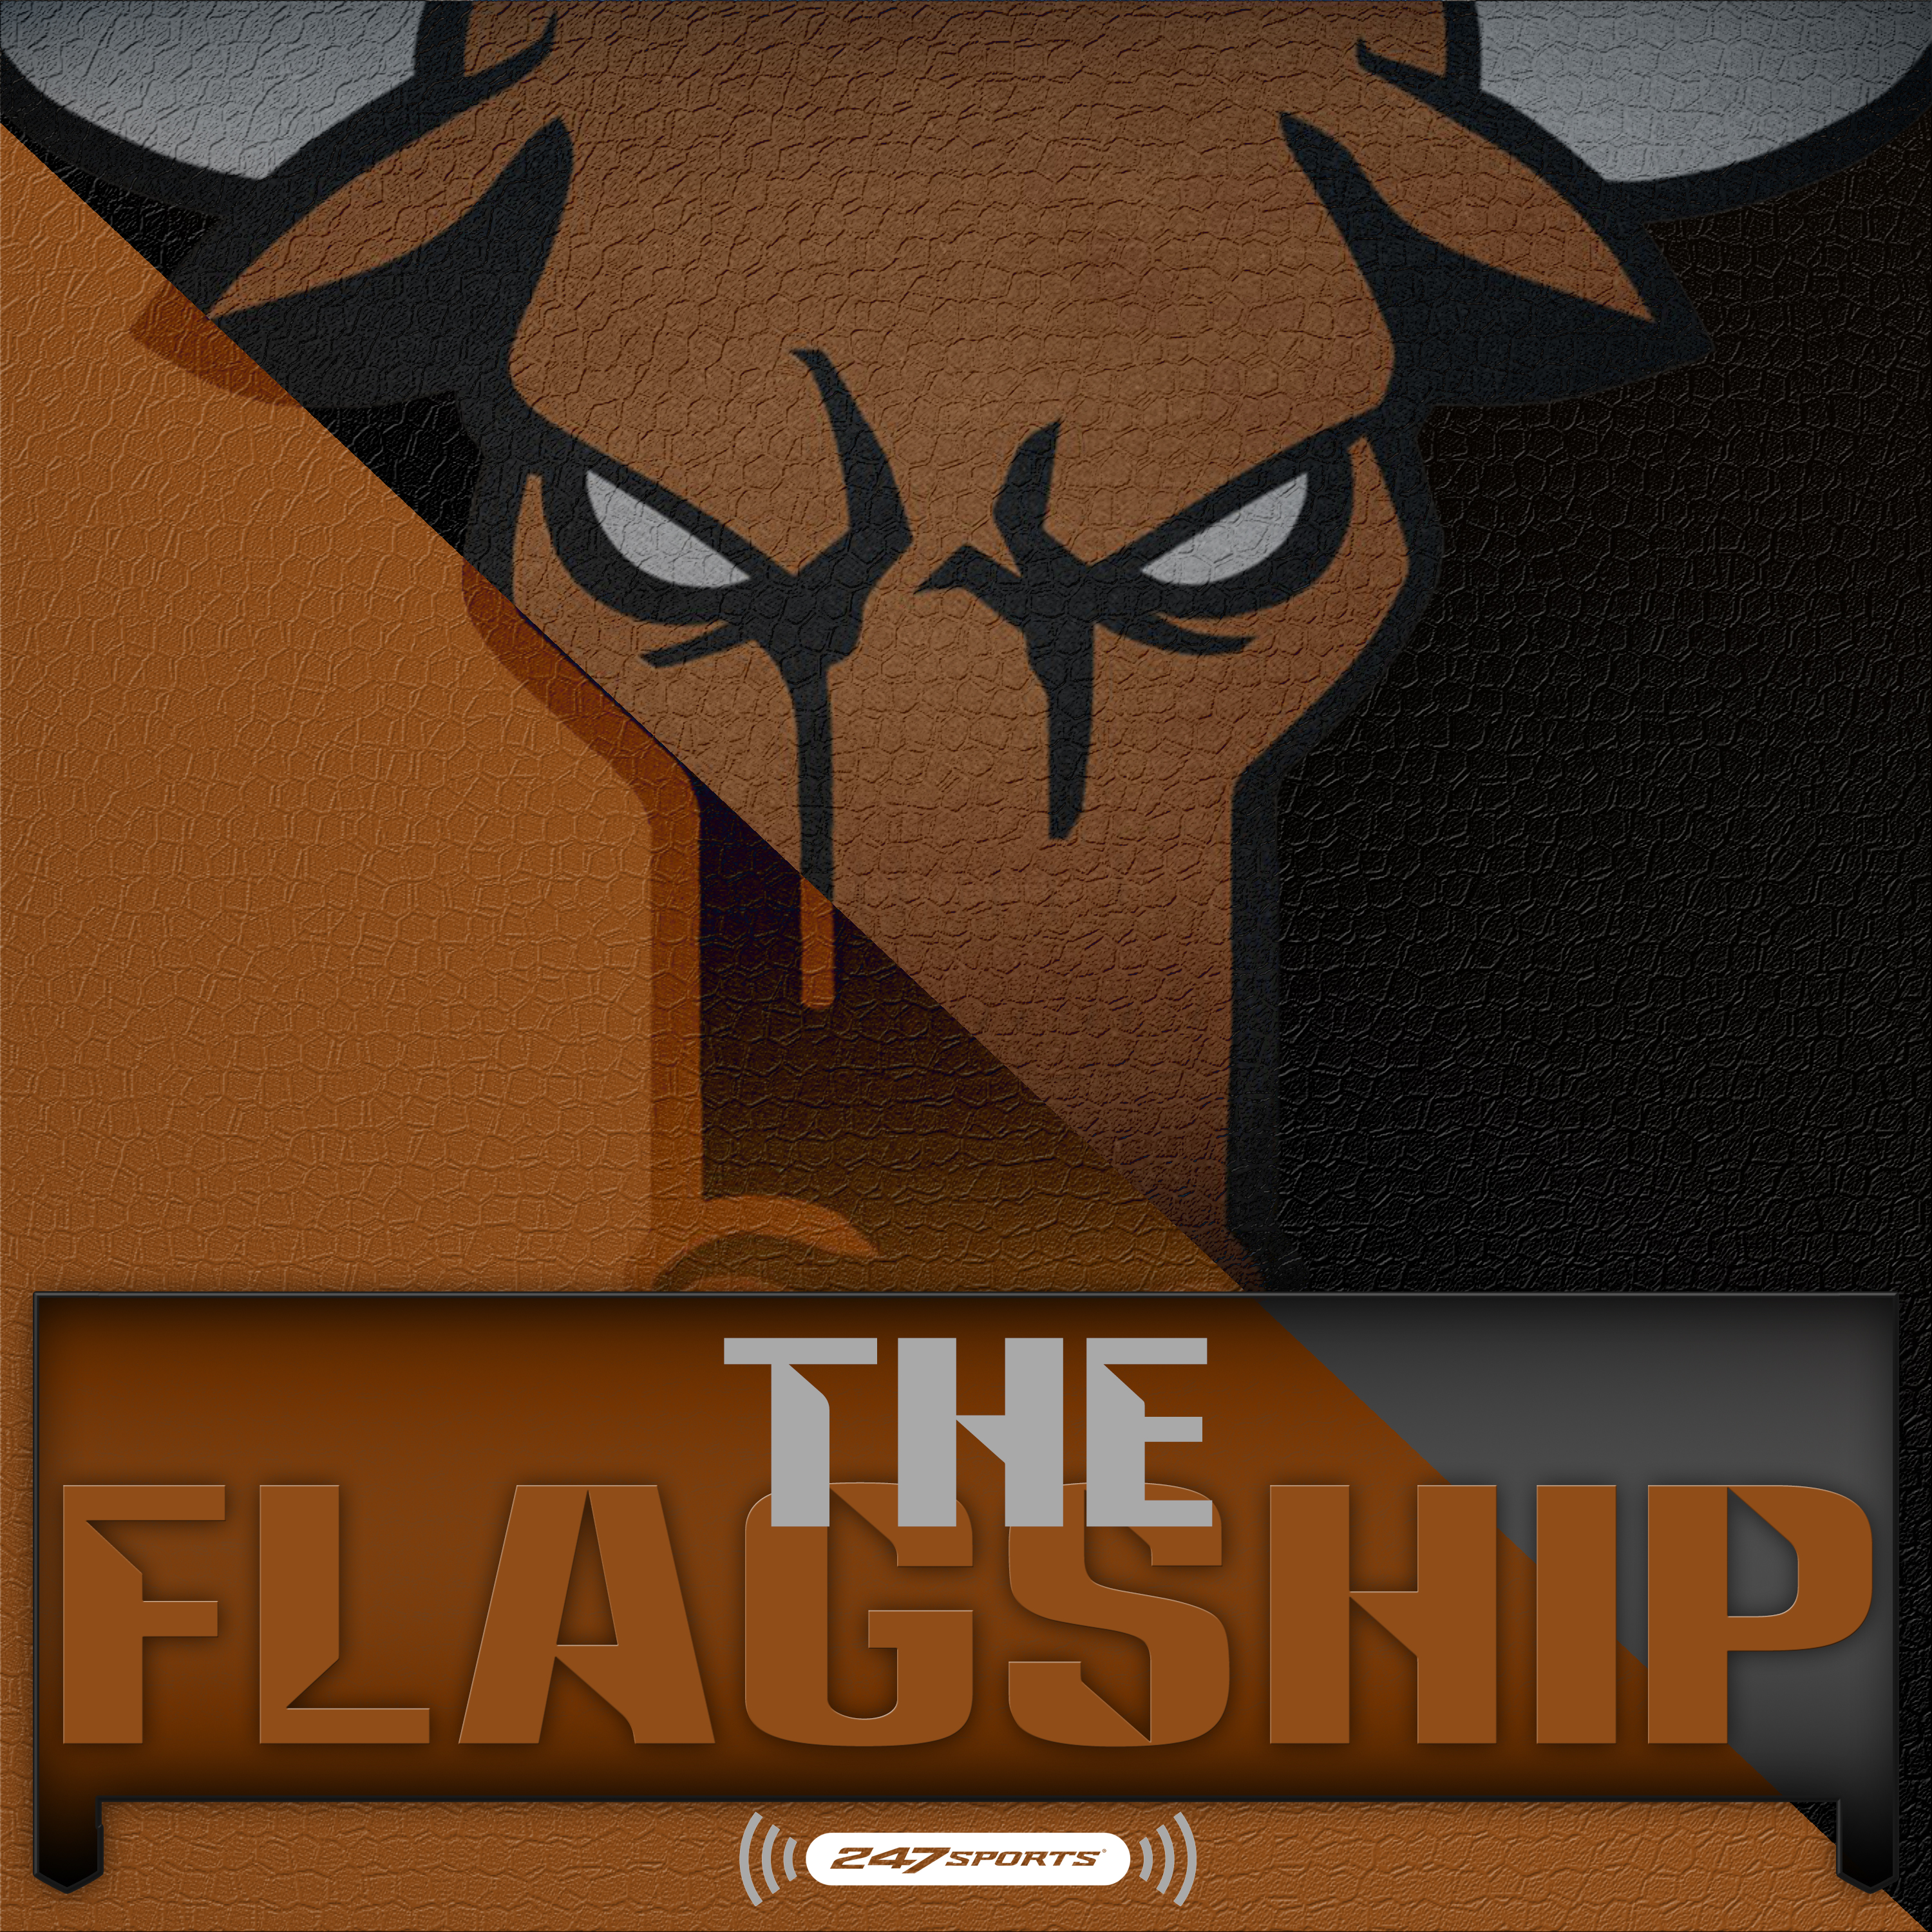 The Flagship: Inside scoop on Mike Yurcich